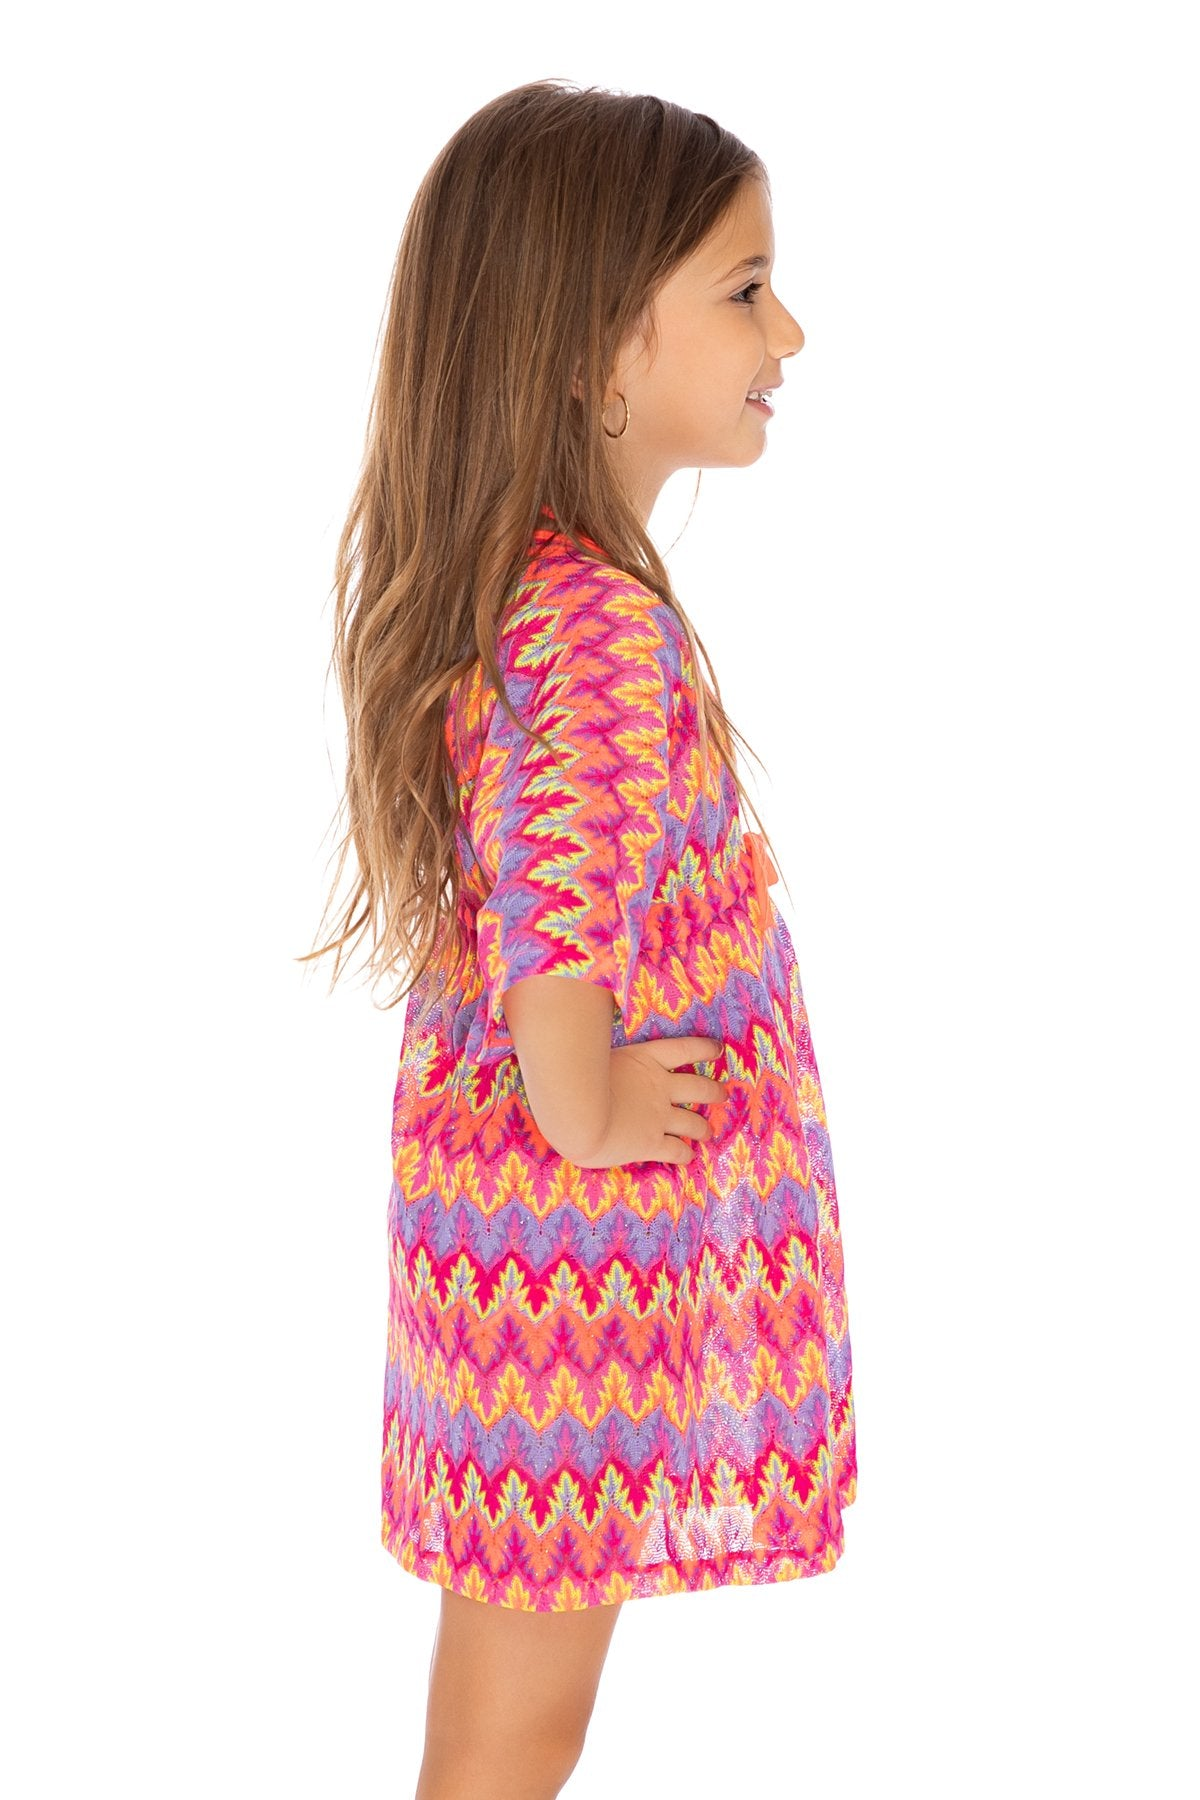 SONG OF THE SEA - Short Tunic • Multicolor